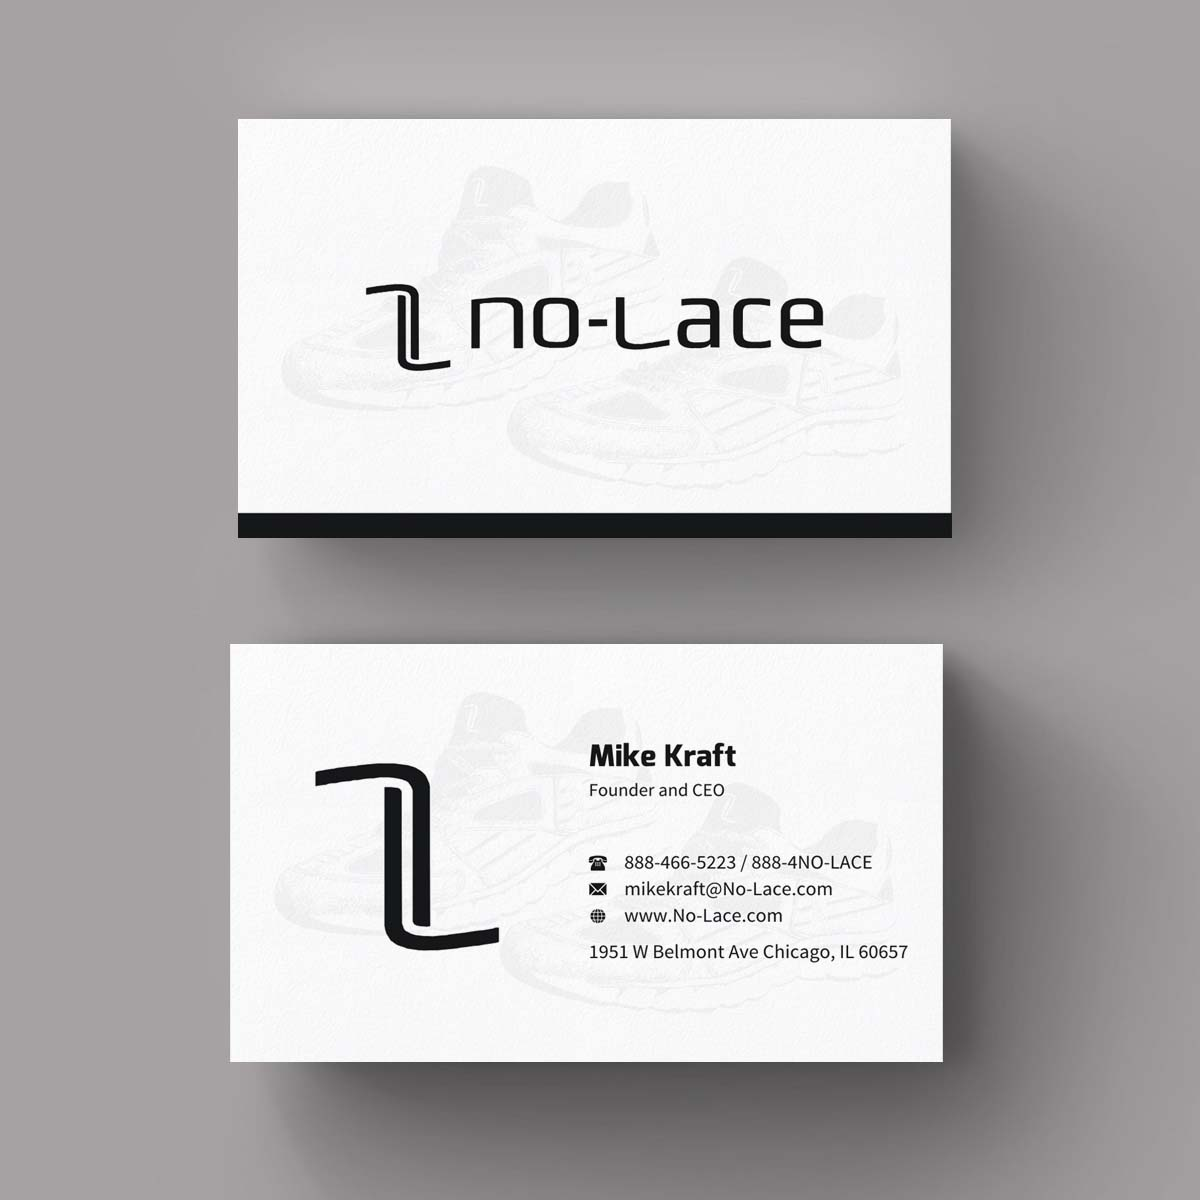 Famous founder and ceo business card contemporary business card charming founder and ceo business card photos business card colourmoves